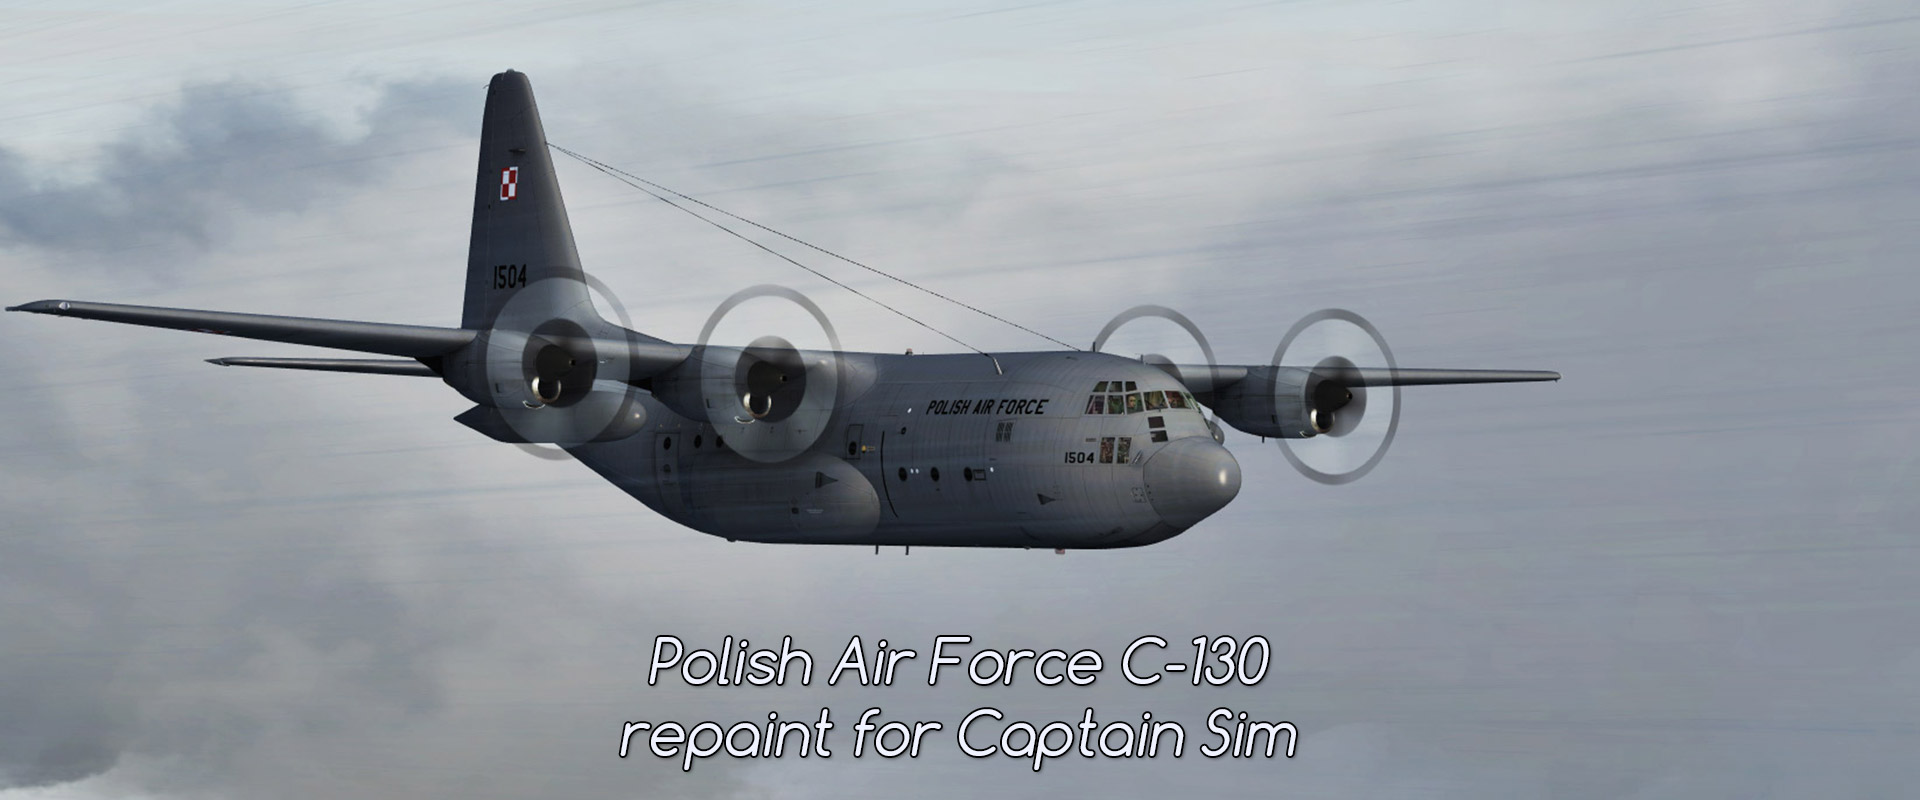 Polish Air Force C-130 – repaint for Captain Sim